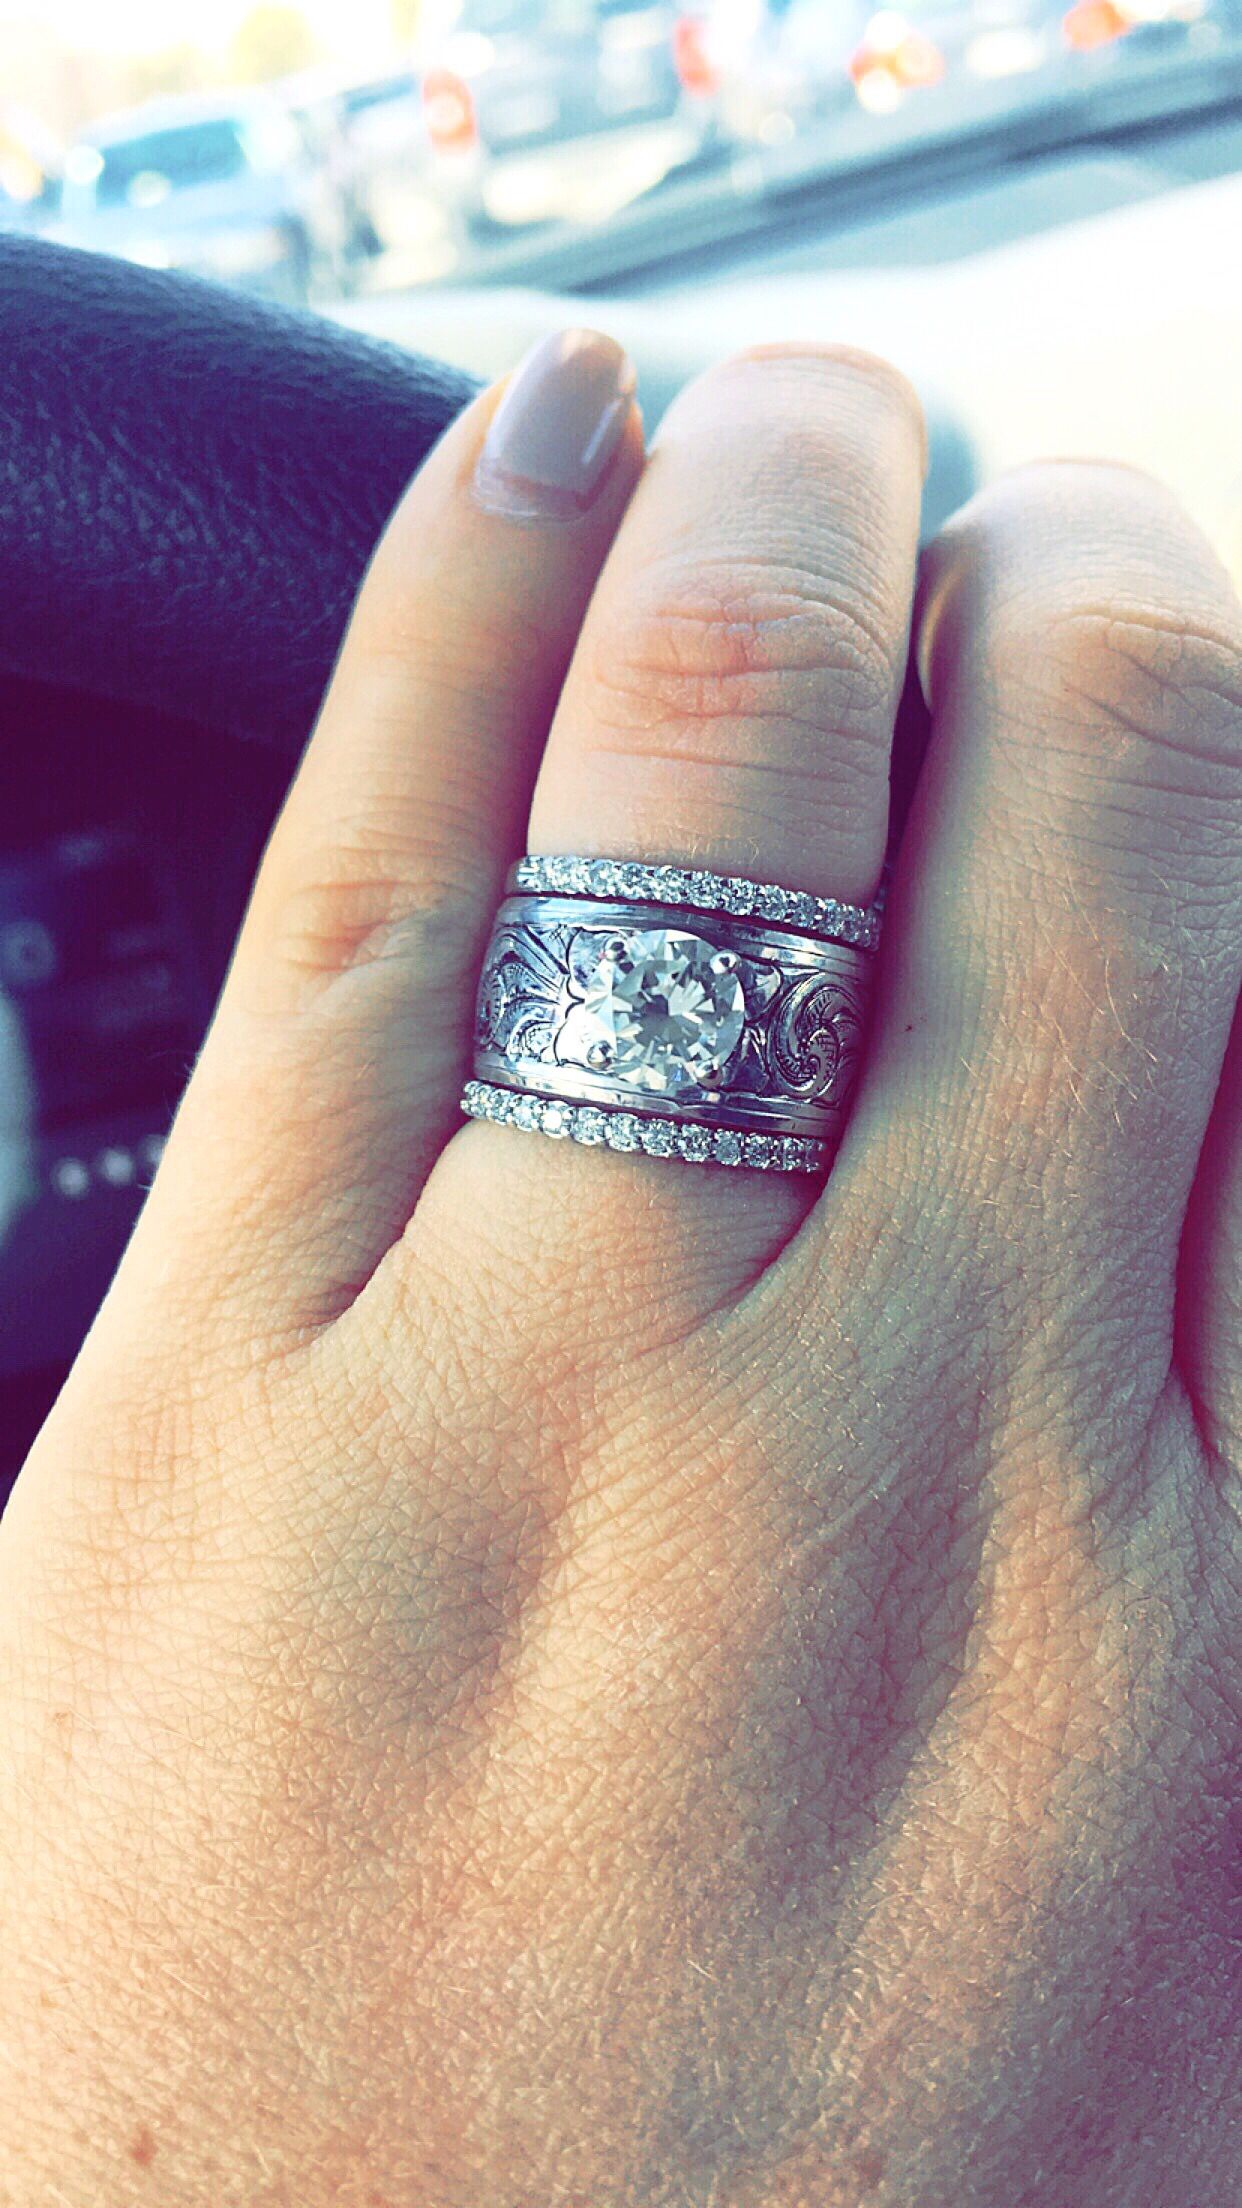 sports wedding bands Engagement ring and wedding bands engraving western engagementring